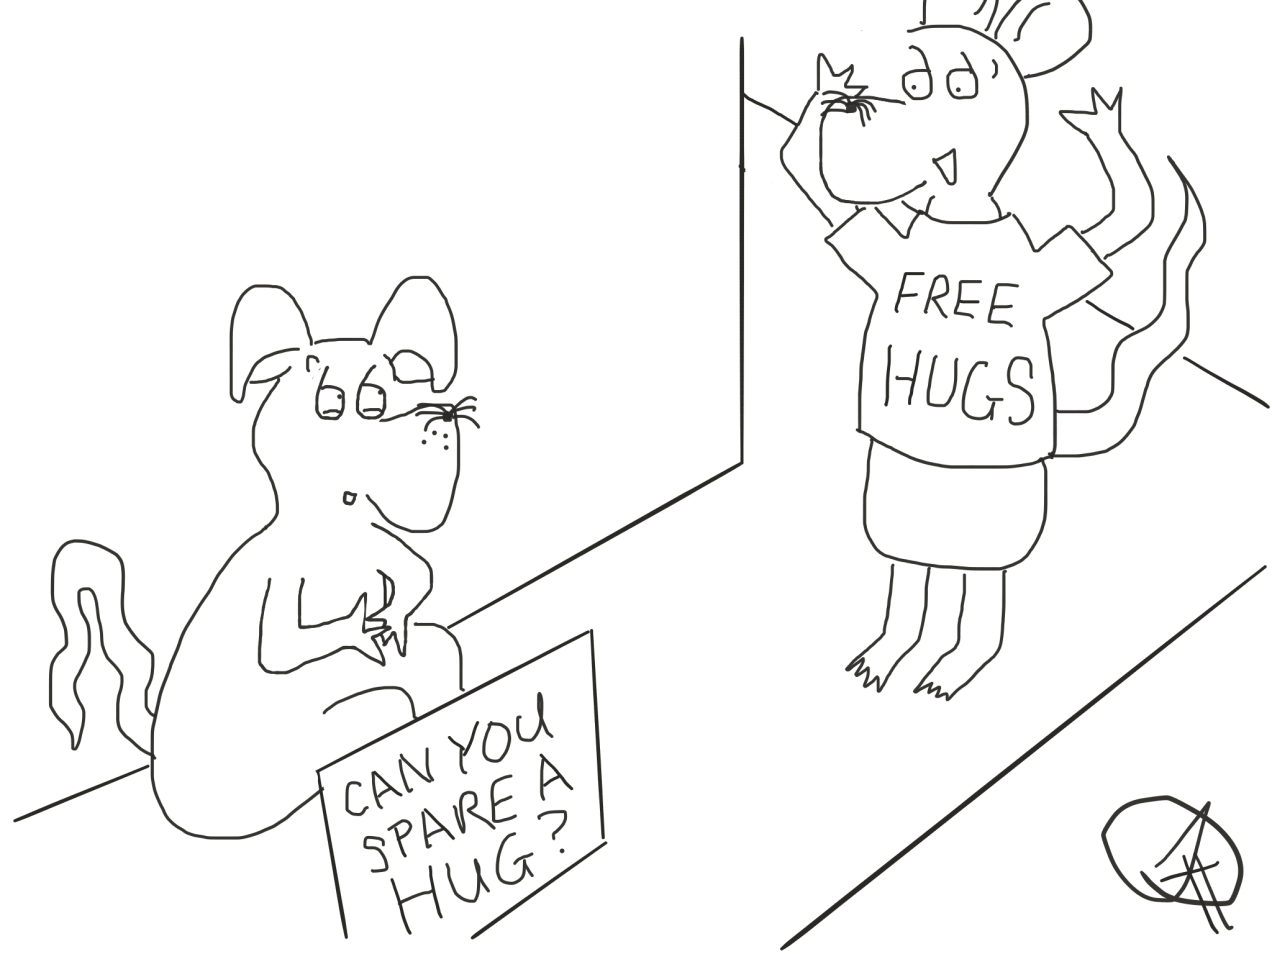 free hugs Happy Rat